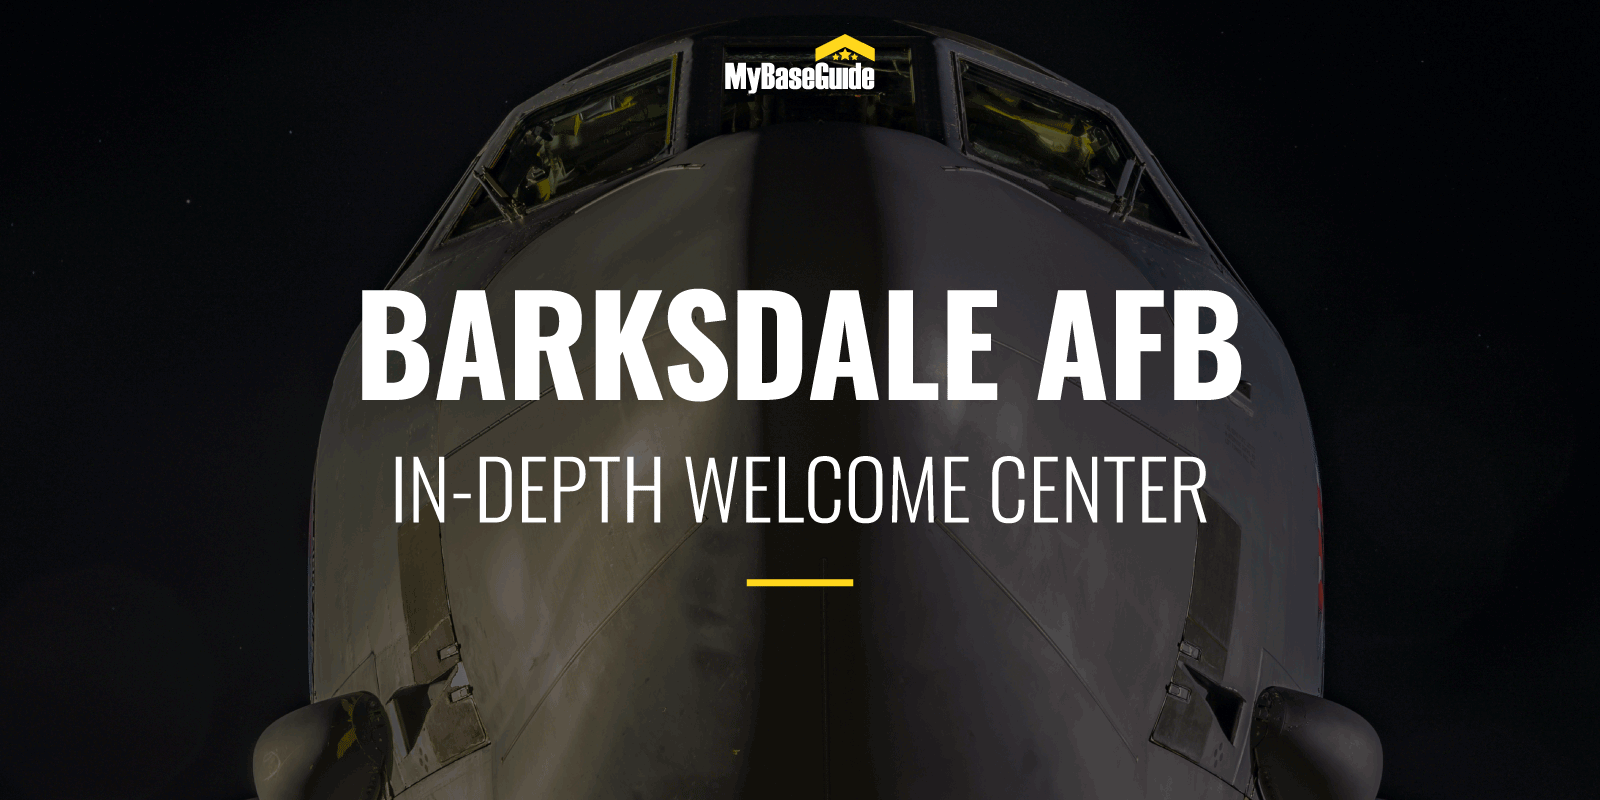 Barksdale Air Force Base: In-Depth Welcome Center